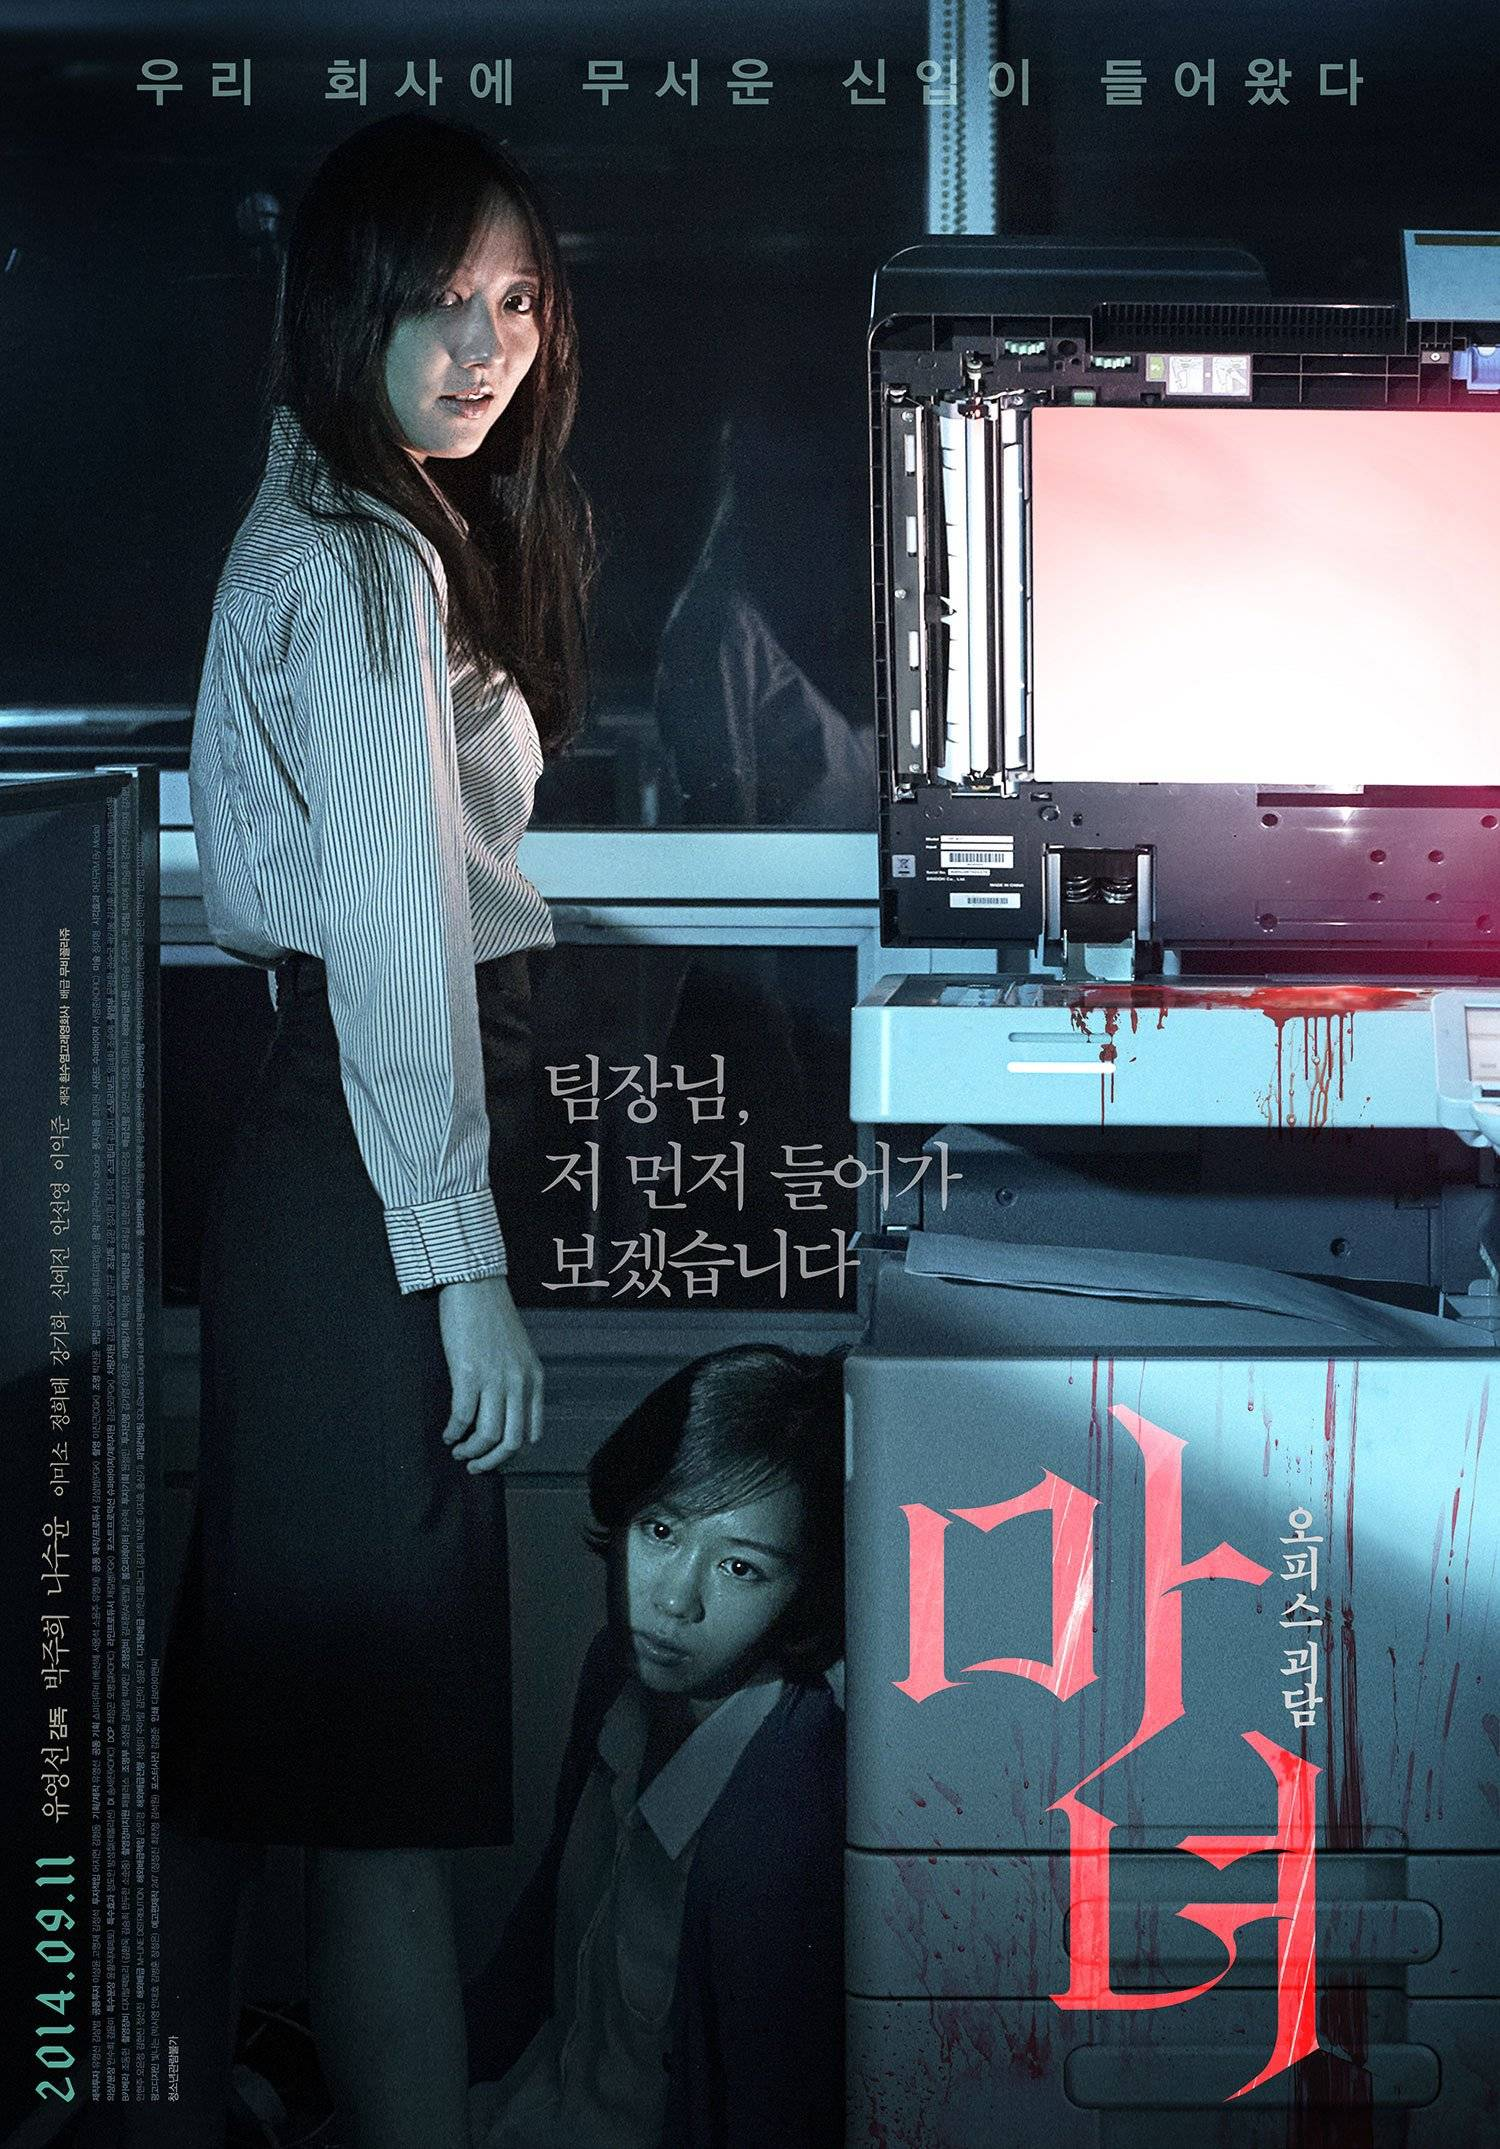 Video Added Official Trailer And New Poster For The Korean Movie